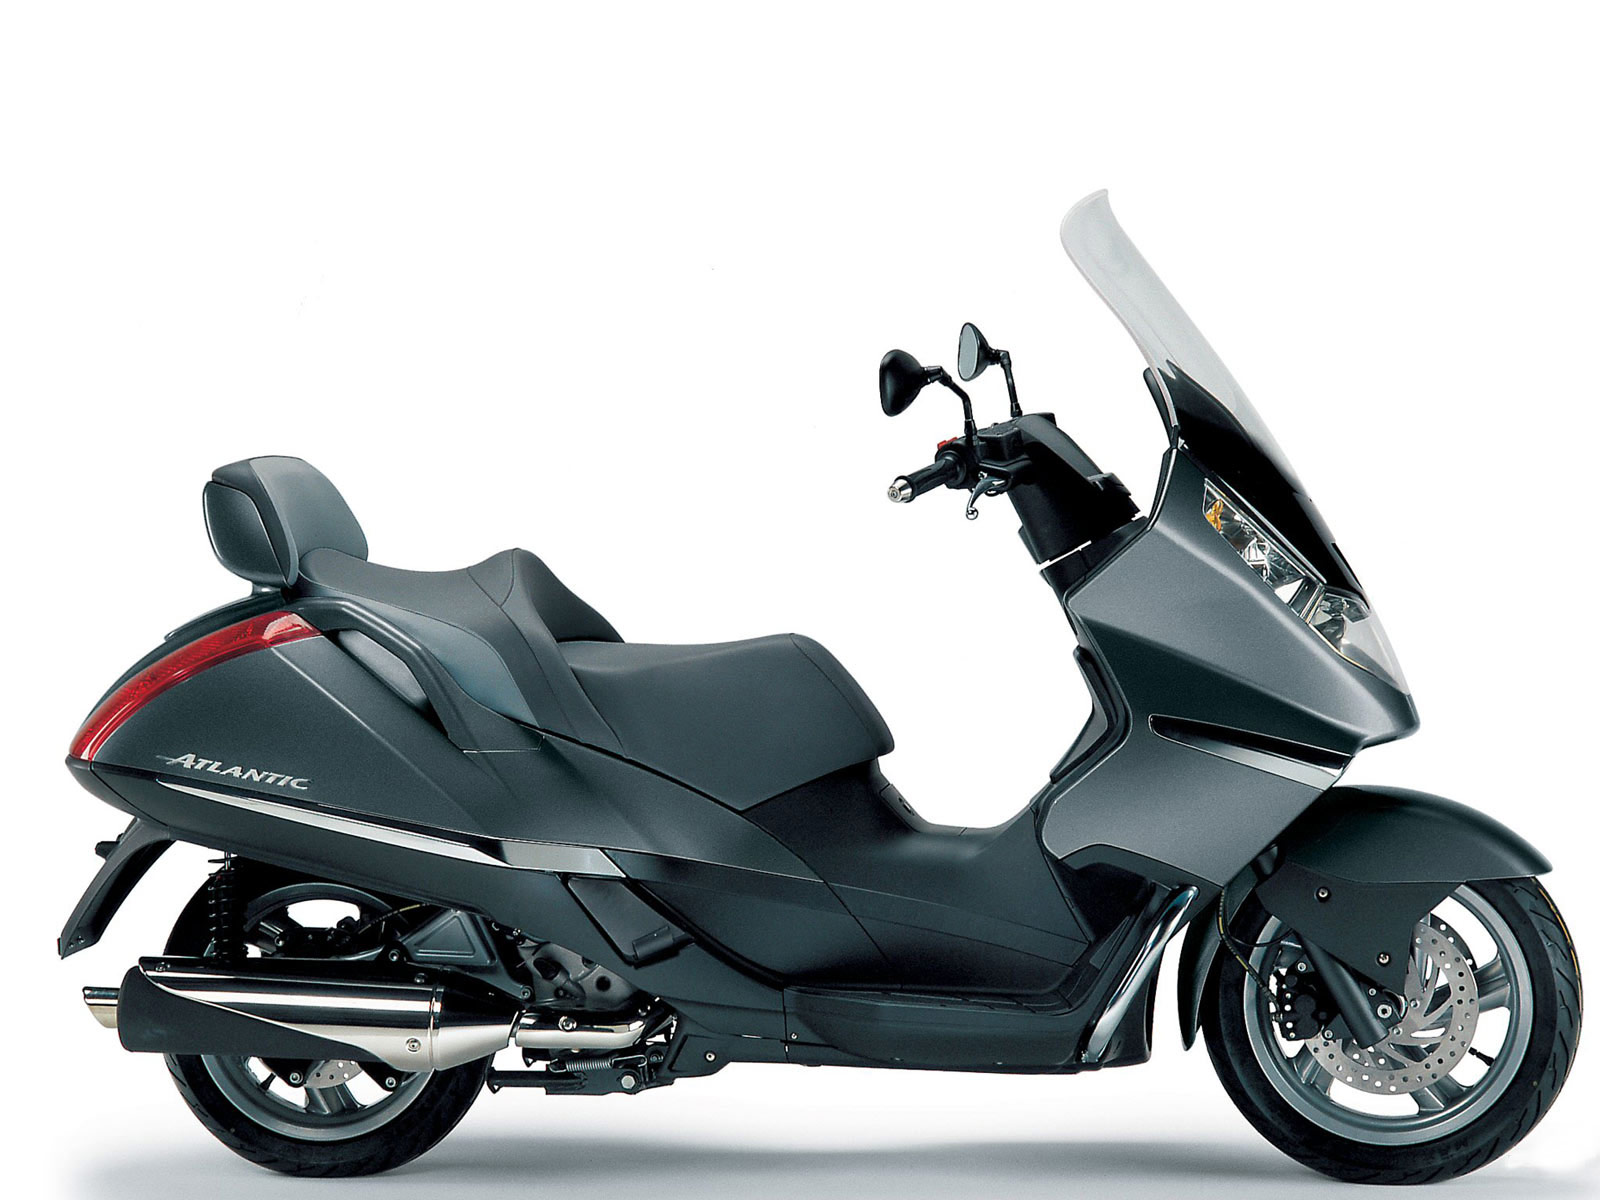 2005 aprilia atlantic 500 scooter pictures accident lawyers info. Black Bedroom Furniture Sets. Home Design Ideas